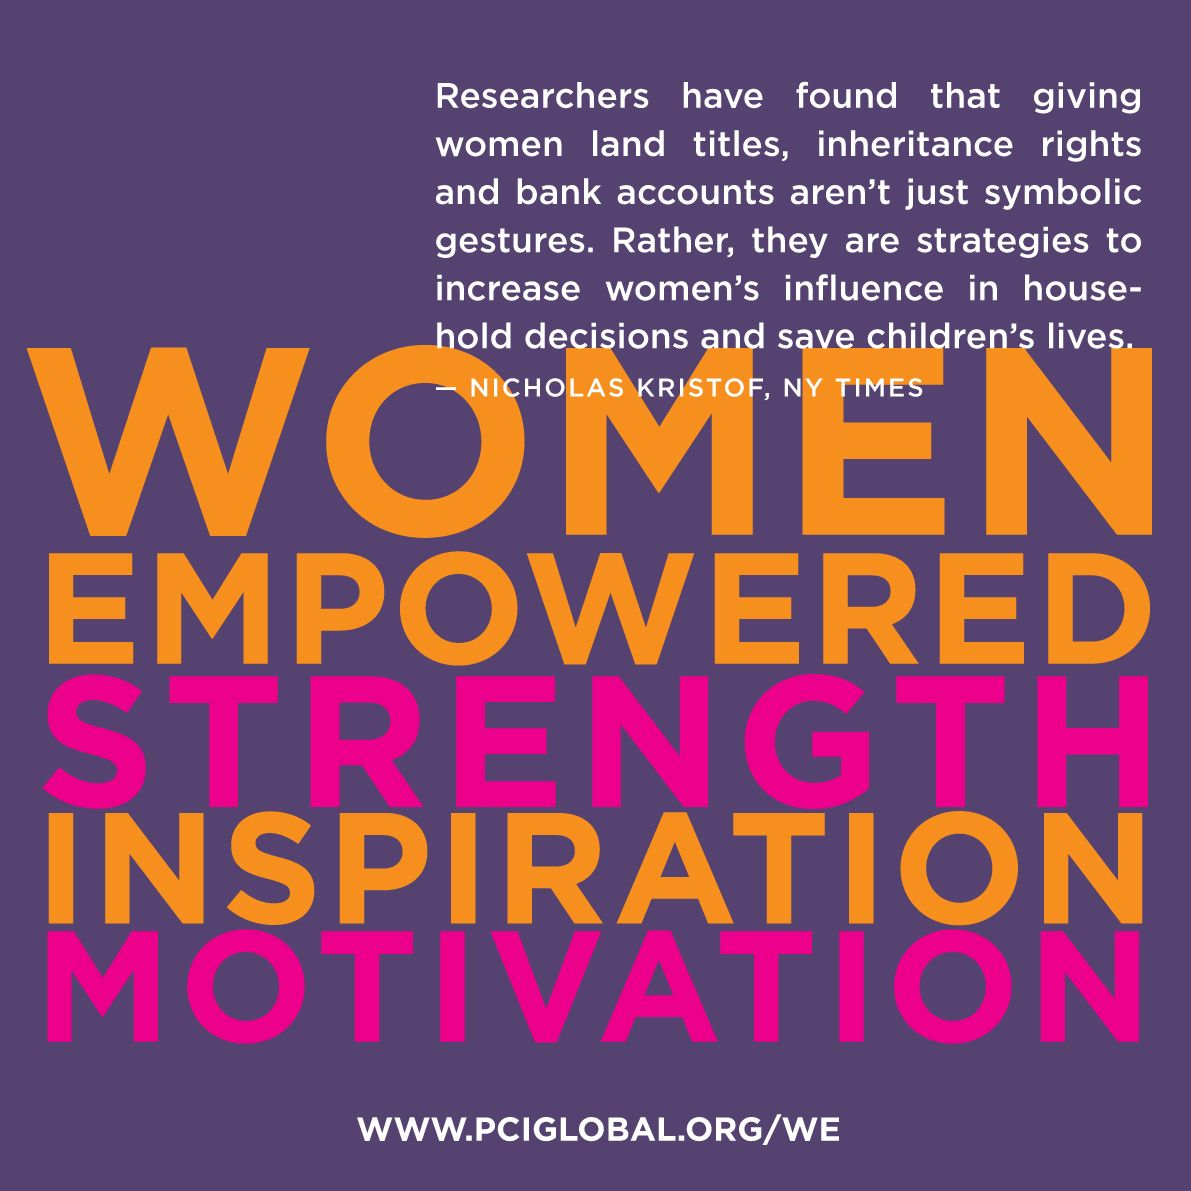 We Women Empowered Inspirational Quotes About Strength Inspirational Quotes For Women Inspirational Quotes